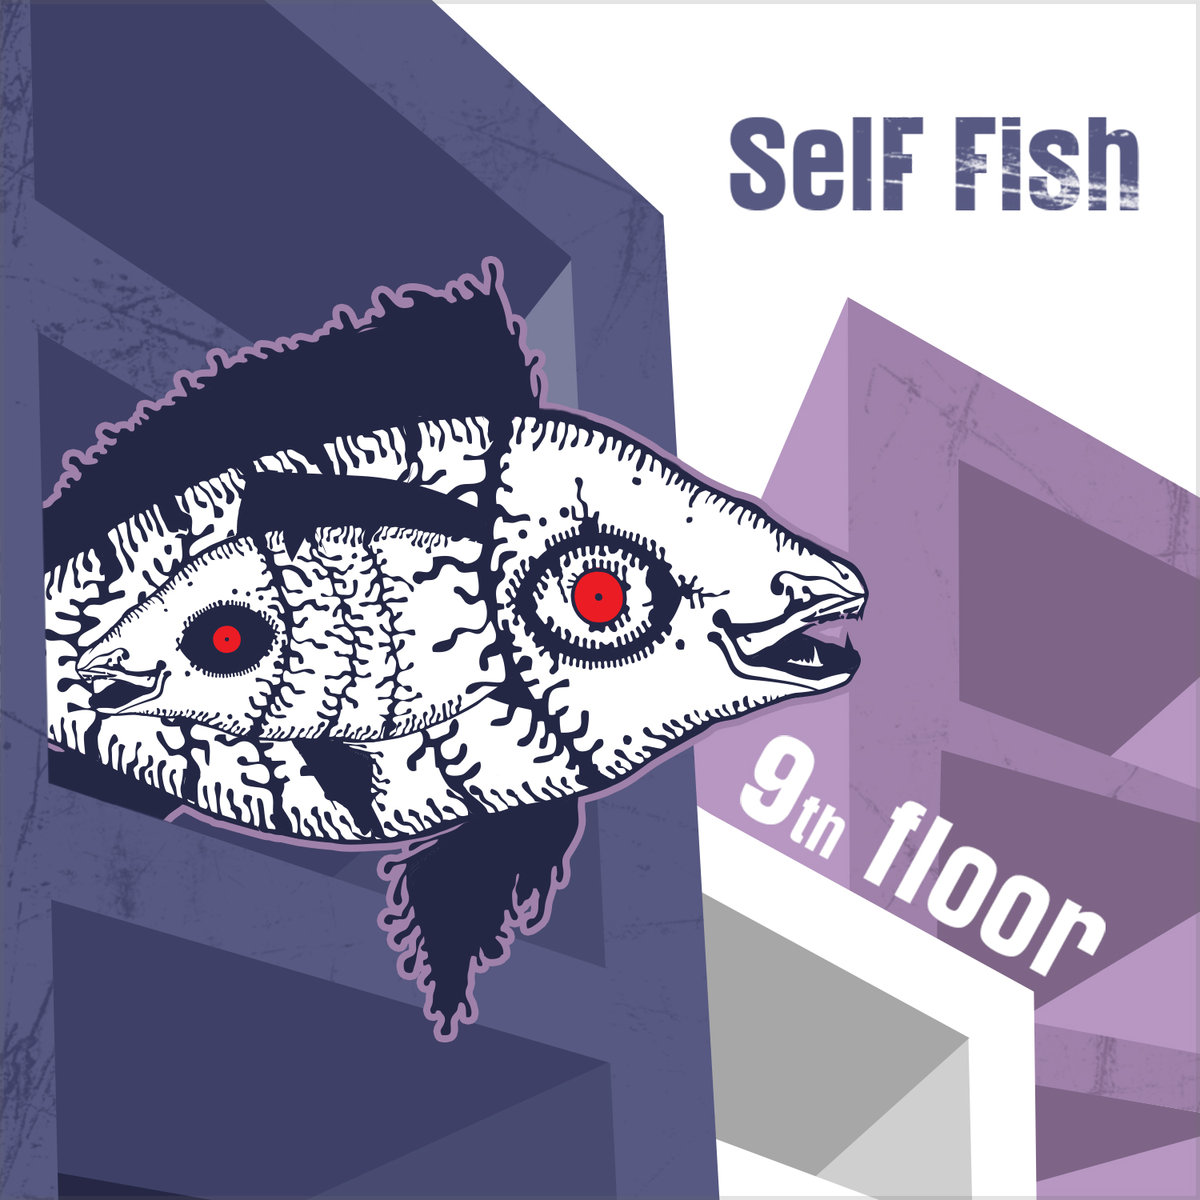 Self Fish - Self Fish @ 'Self Fish' album (electronic, dubstep)